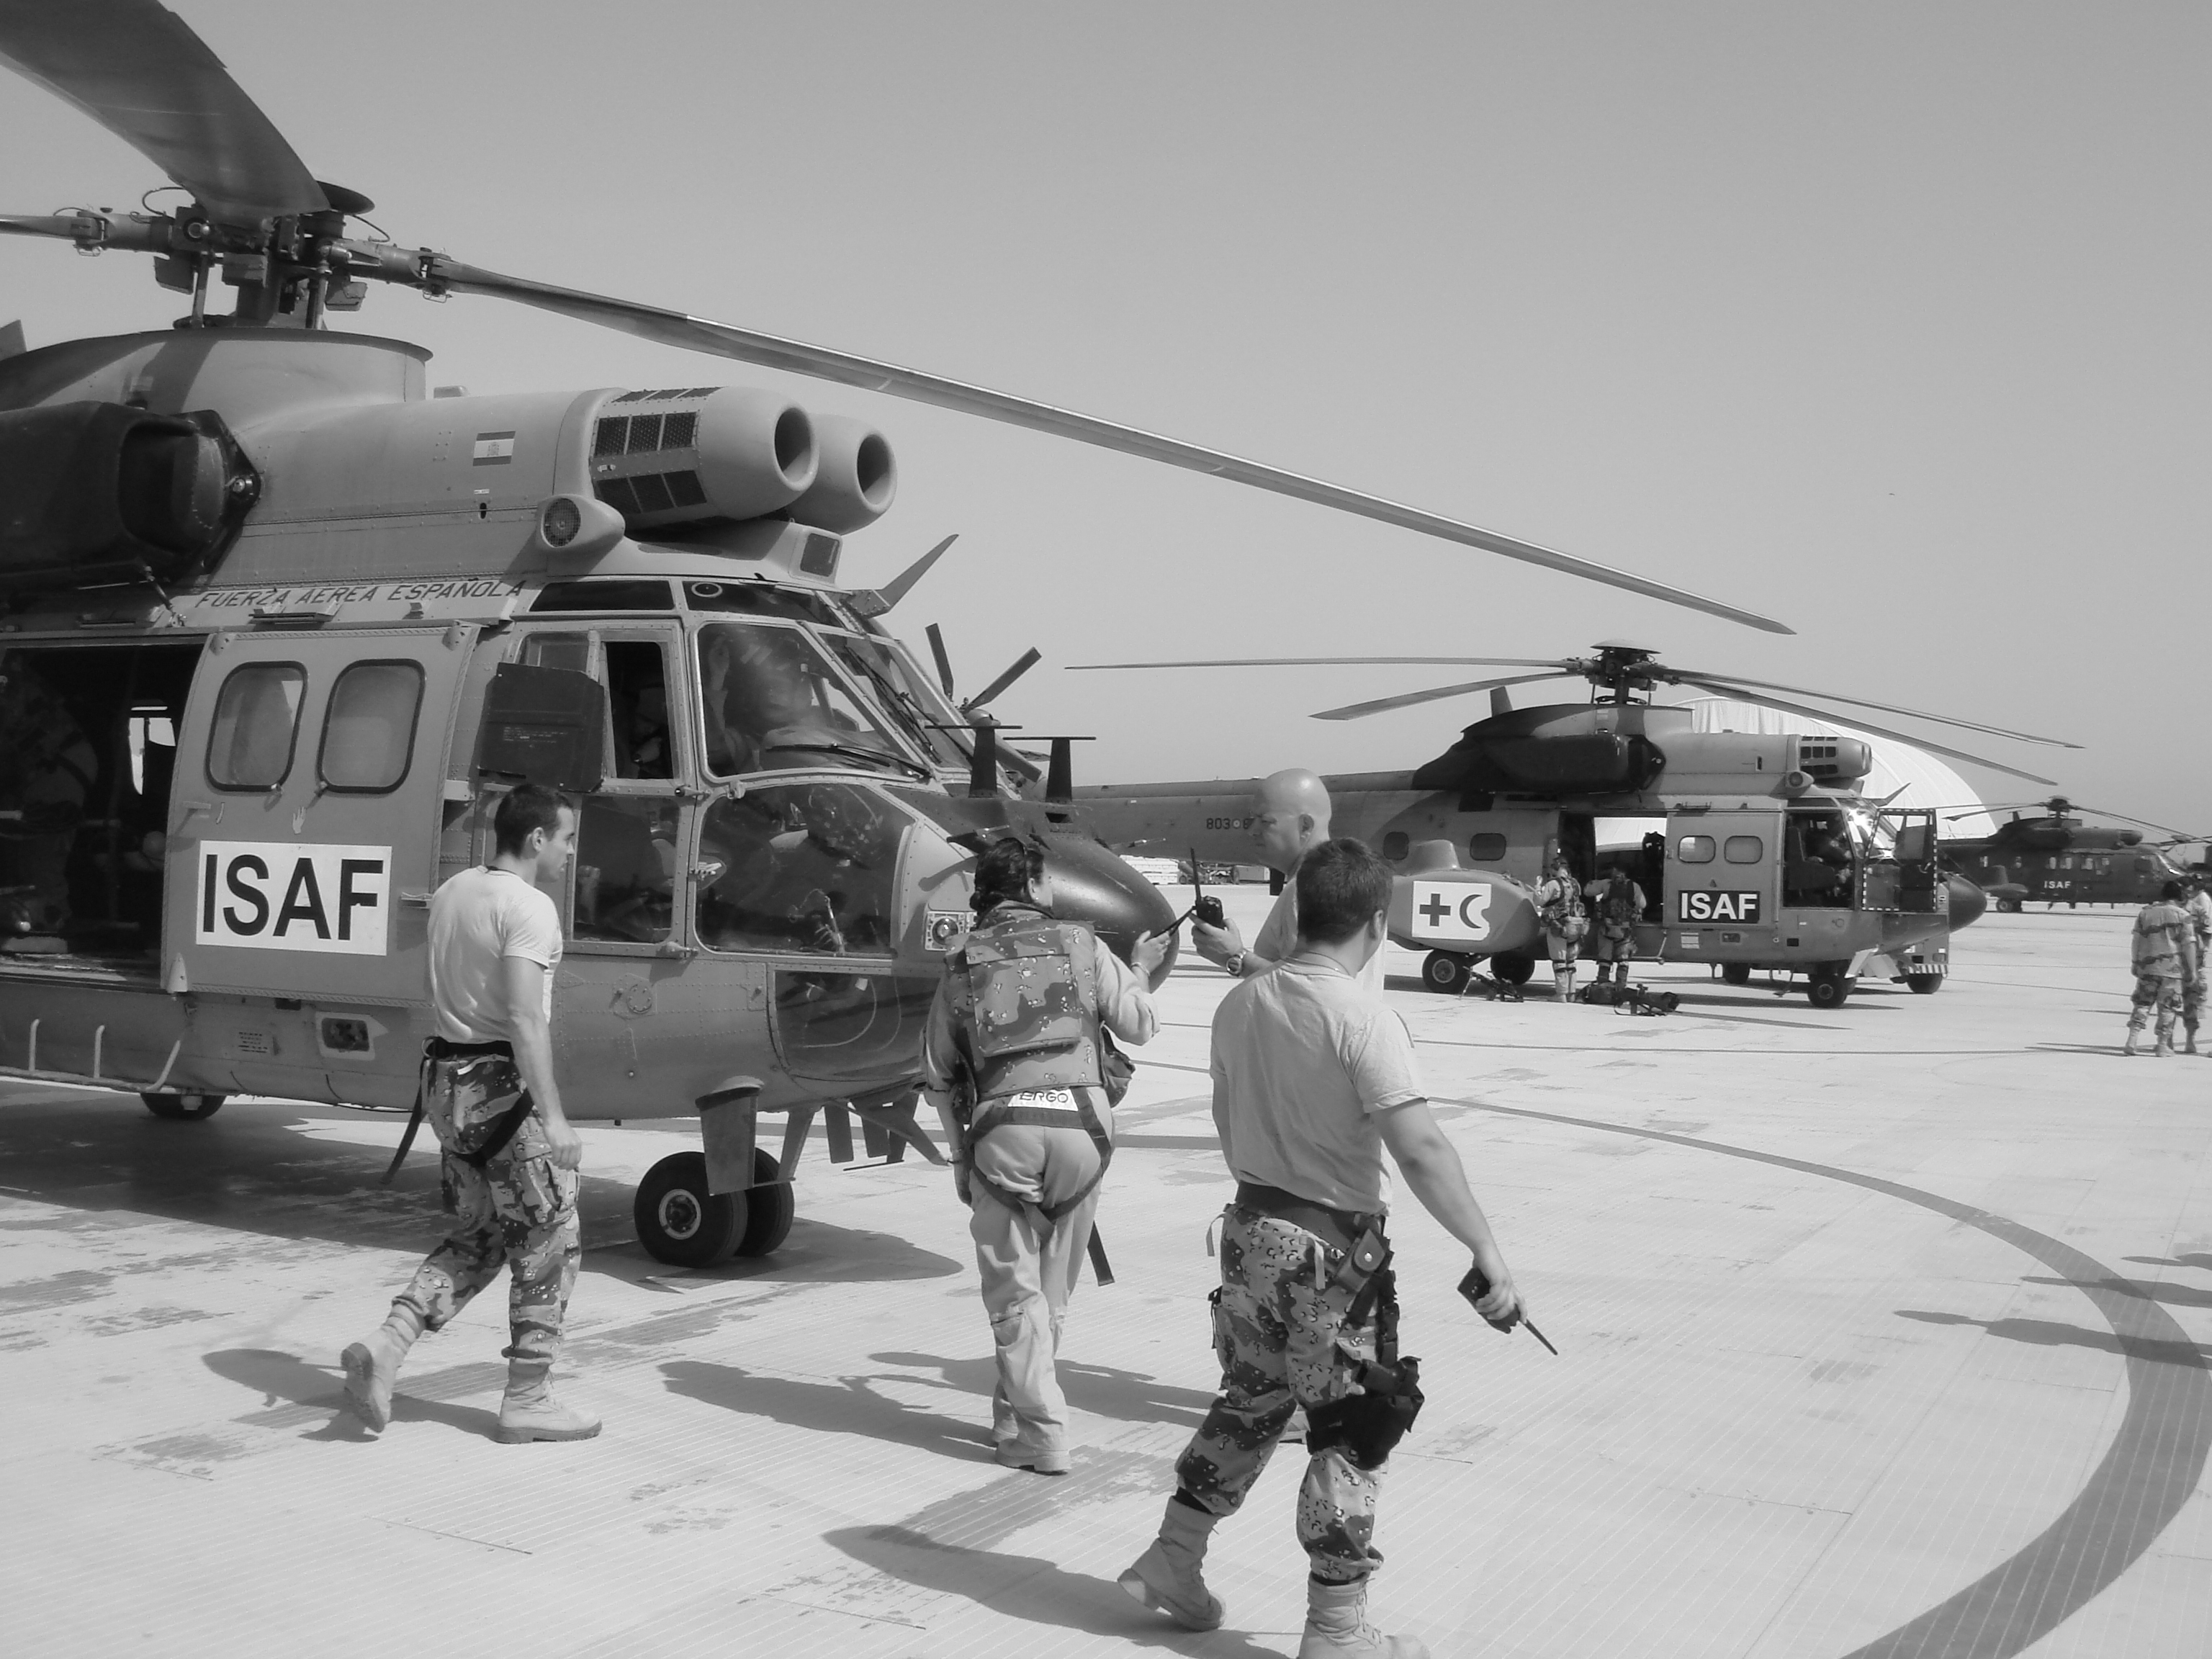 Isaf transport helicopters of spain. photo